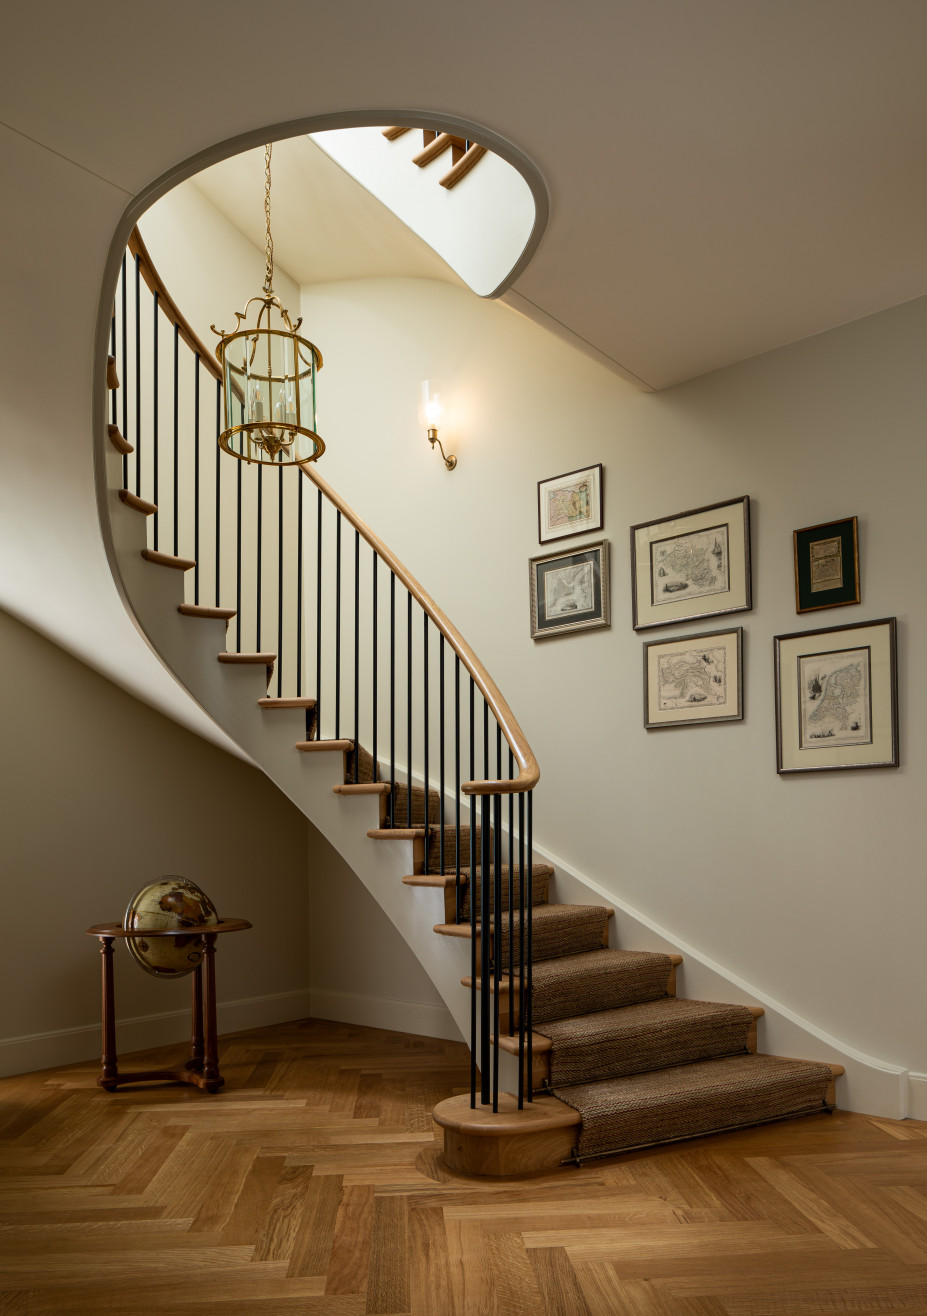 Wooden staircase with glass railing